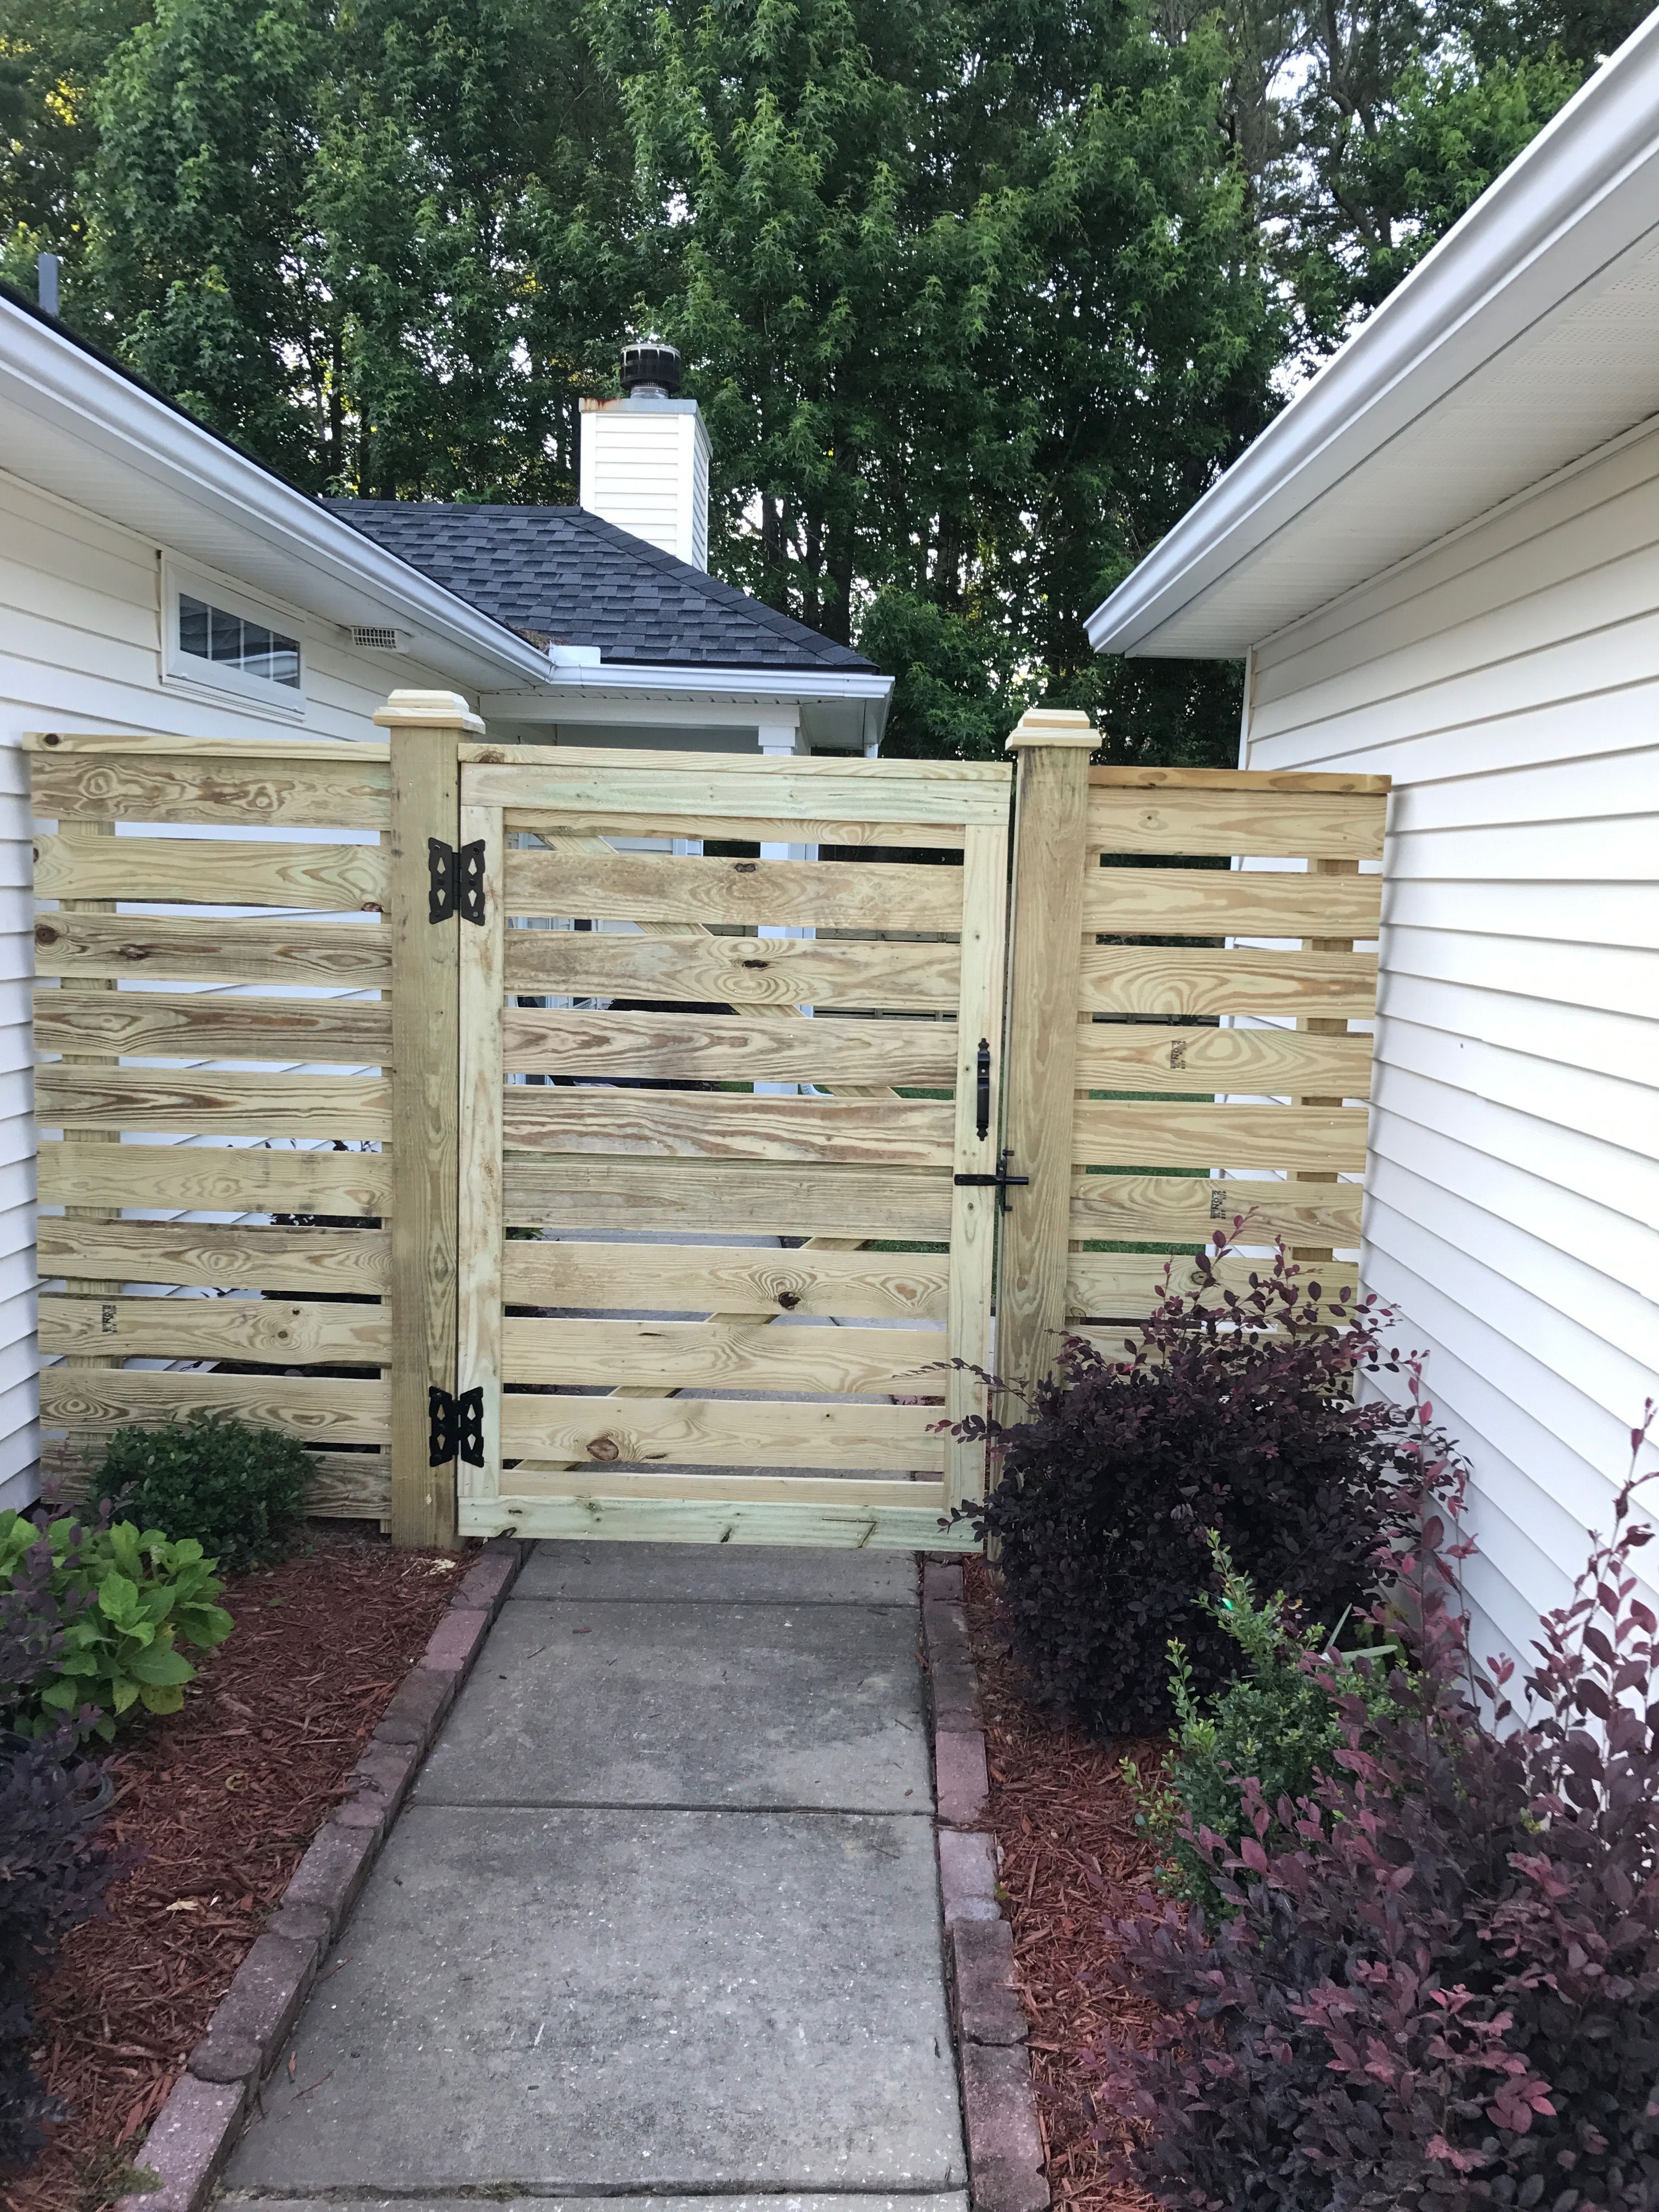 1x6 Horizontal Board Fence With Gate Backyard Fences Wooden Fence Gate Garden Fence